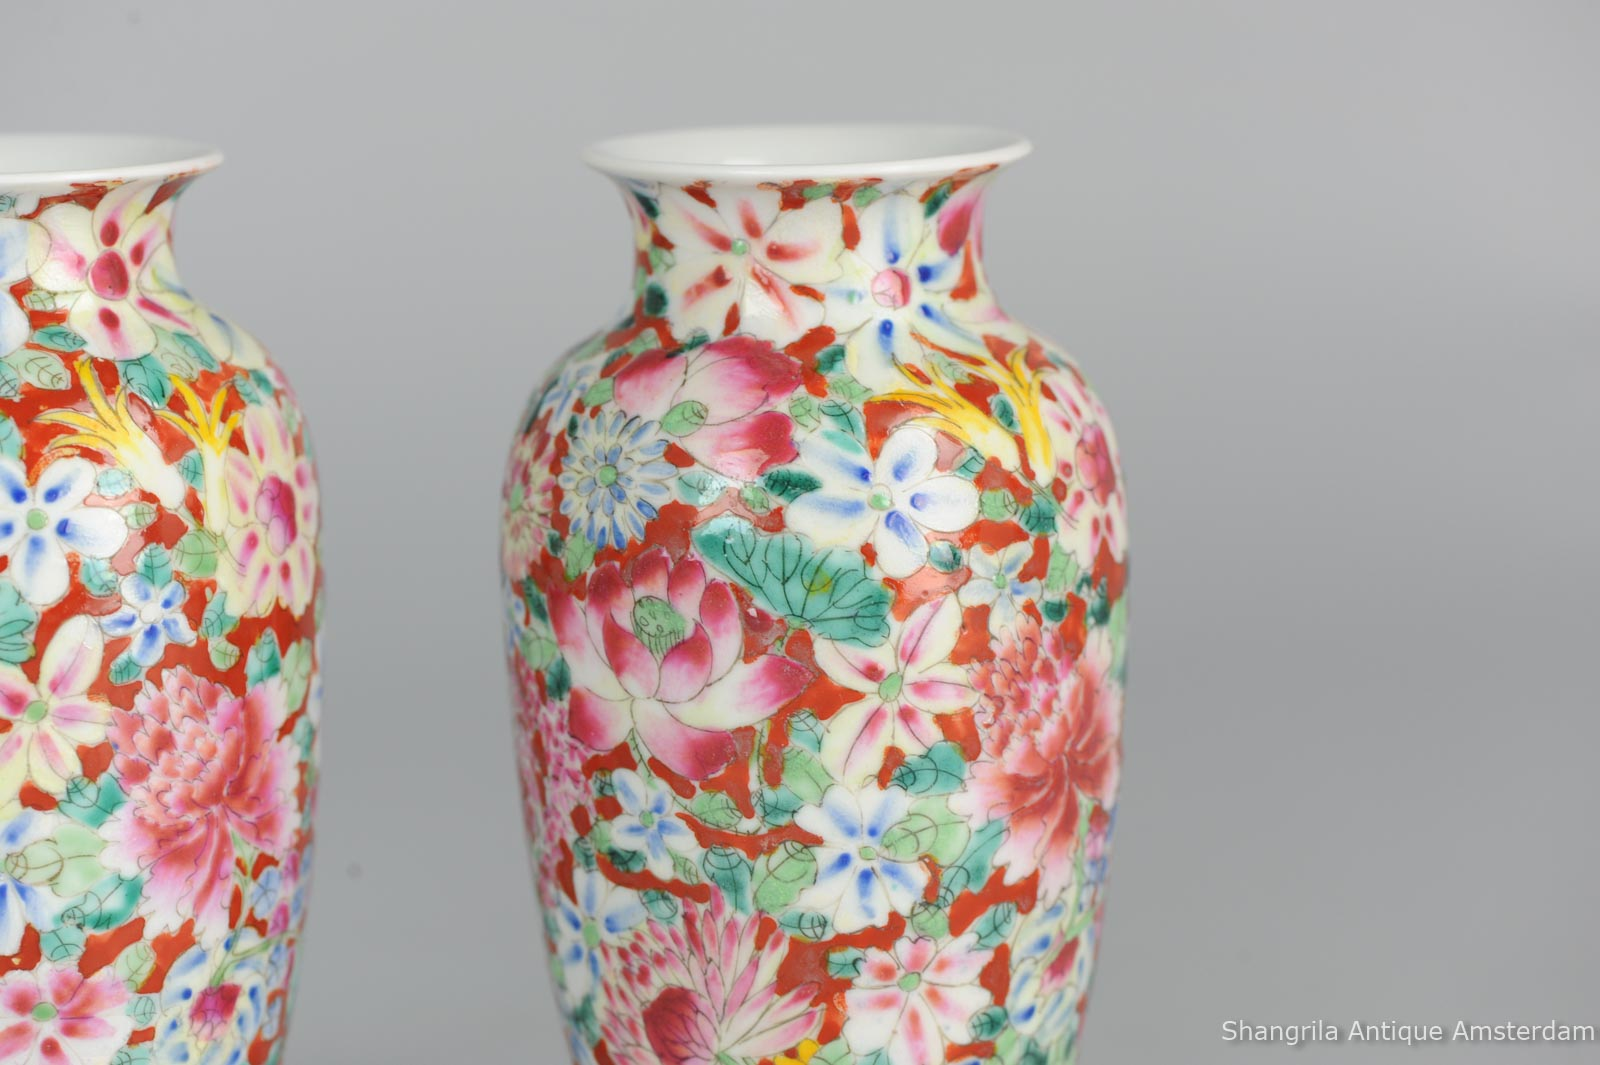 Antique pair of late qing or republic millefleur vases rare red type guangxu marked chinese porcelain vase 28g set 1920c chinese porcelain vases millefleur guangxu marked reviewsmspy